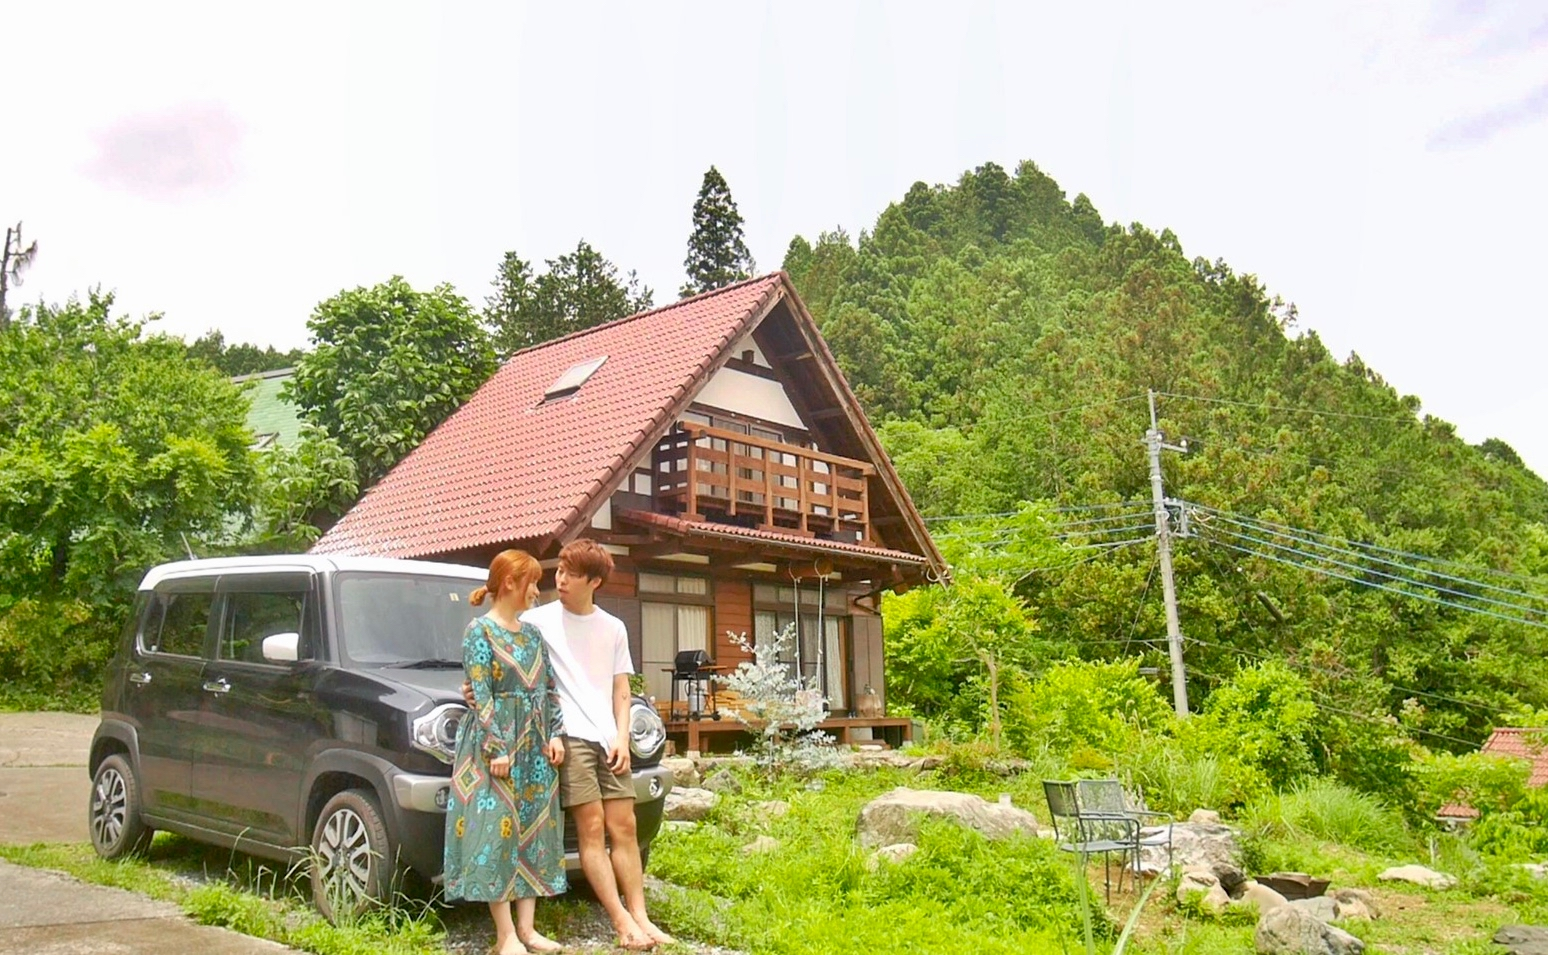 Eri-Taku Couple goes car camping at Naguri Fire Pit Garden in Hanno, Saitama